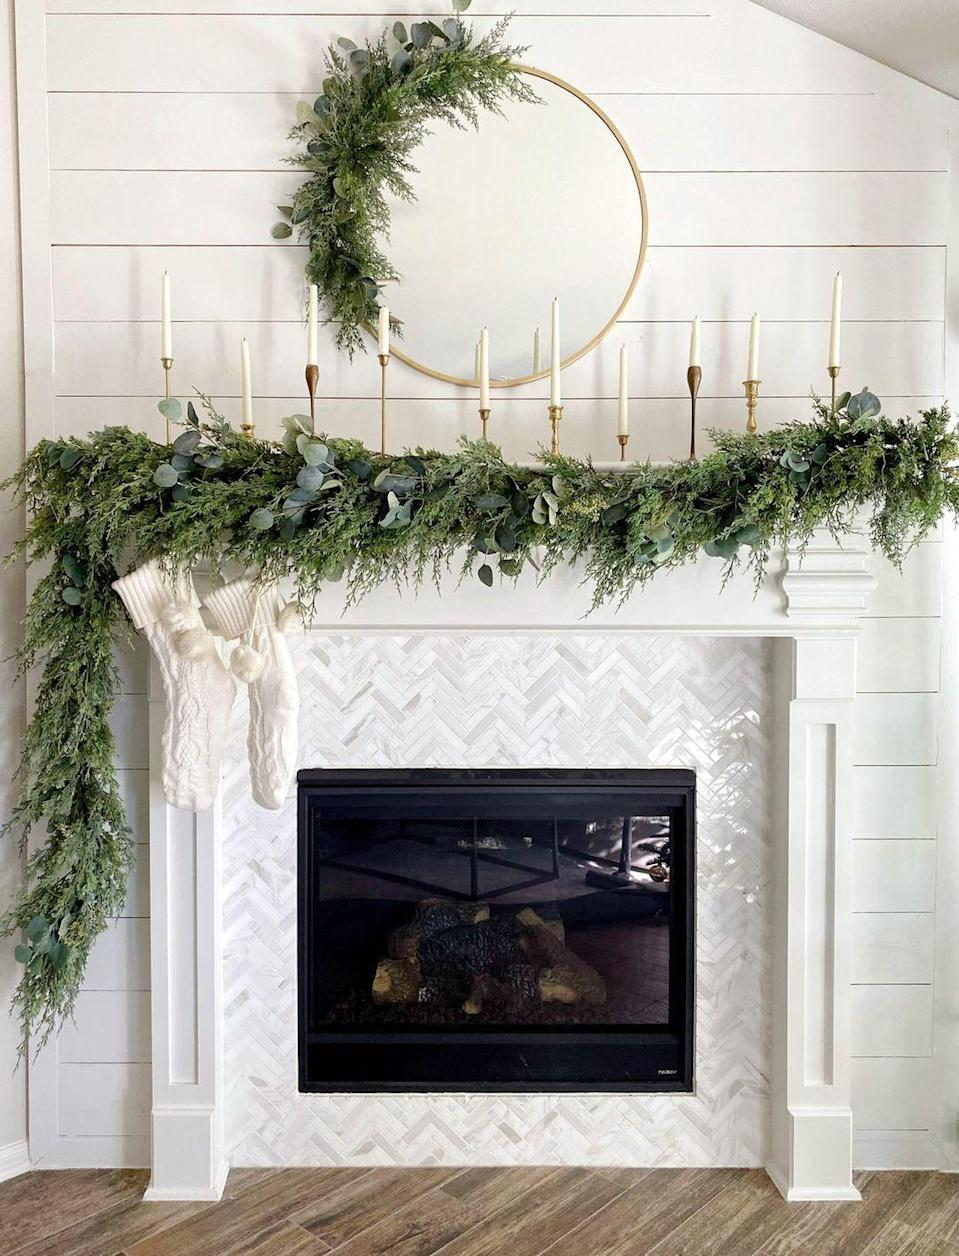 "<p>Rather than center everything on your mantel, let garland or greenery cascade to a single side for a romantic look you'll never want to part with. This works well if you have a TV over your fireplace.</p><p><em>See more at <a href=""https://www.instagram.com/p/B5_oecJncvb/"" rel=""nofollow noopener"" target=""_blank"" data-ylk=""slk:Love Resides Here"" class=""link rapid-noclick-resp"">Love Resides Here</a>. </em></p><p><a class=""link rapid-noclick-resp"" href=""https://www.amazon.com/STAR-Candlestick-Decorative-Candlelight-Ornaments/dp/B07H4CS831?tag=syn-yahoo-20&ascsubtag=%5Bartid%7C10072.g.34484299%5Bsrc%7Cyahoo-us"" rel=""nofollow noopener"" target=""_blank"" data-ylk=""slk:SHOP CANDLESTICKS"">SHOP CANDLESTICKS</a></p>"